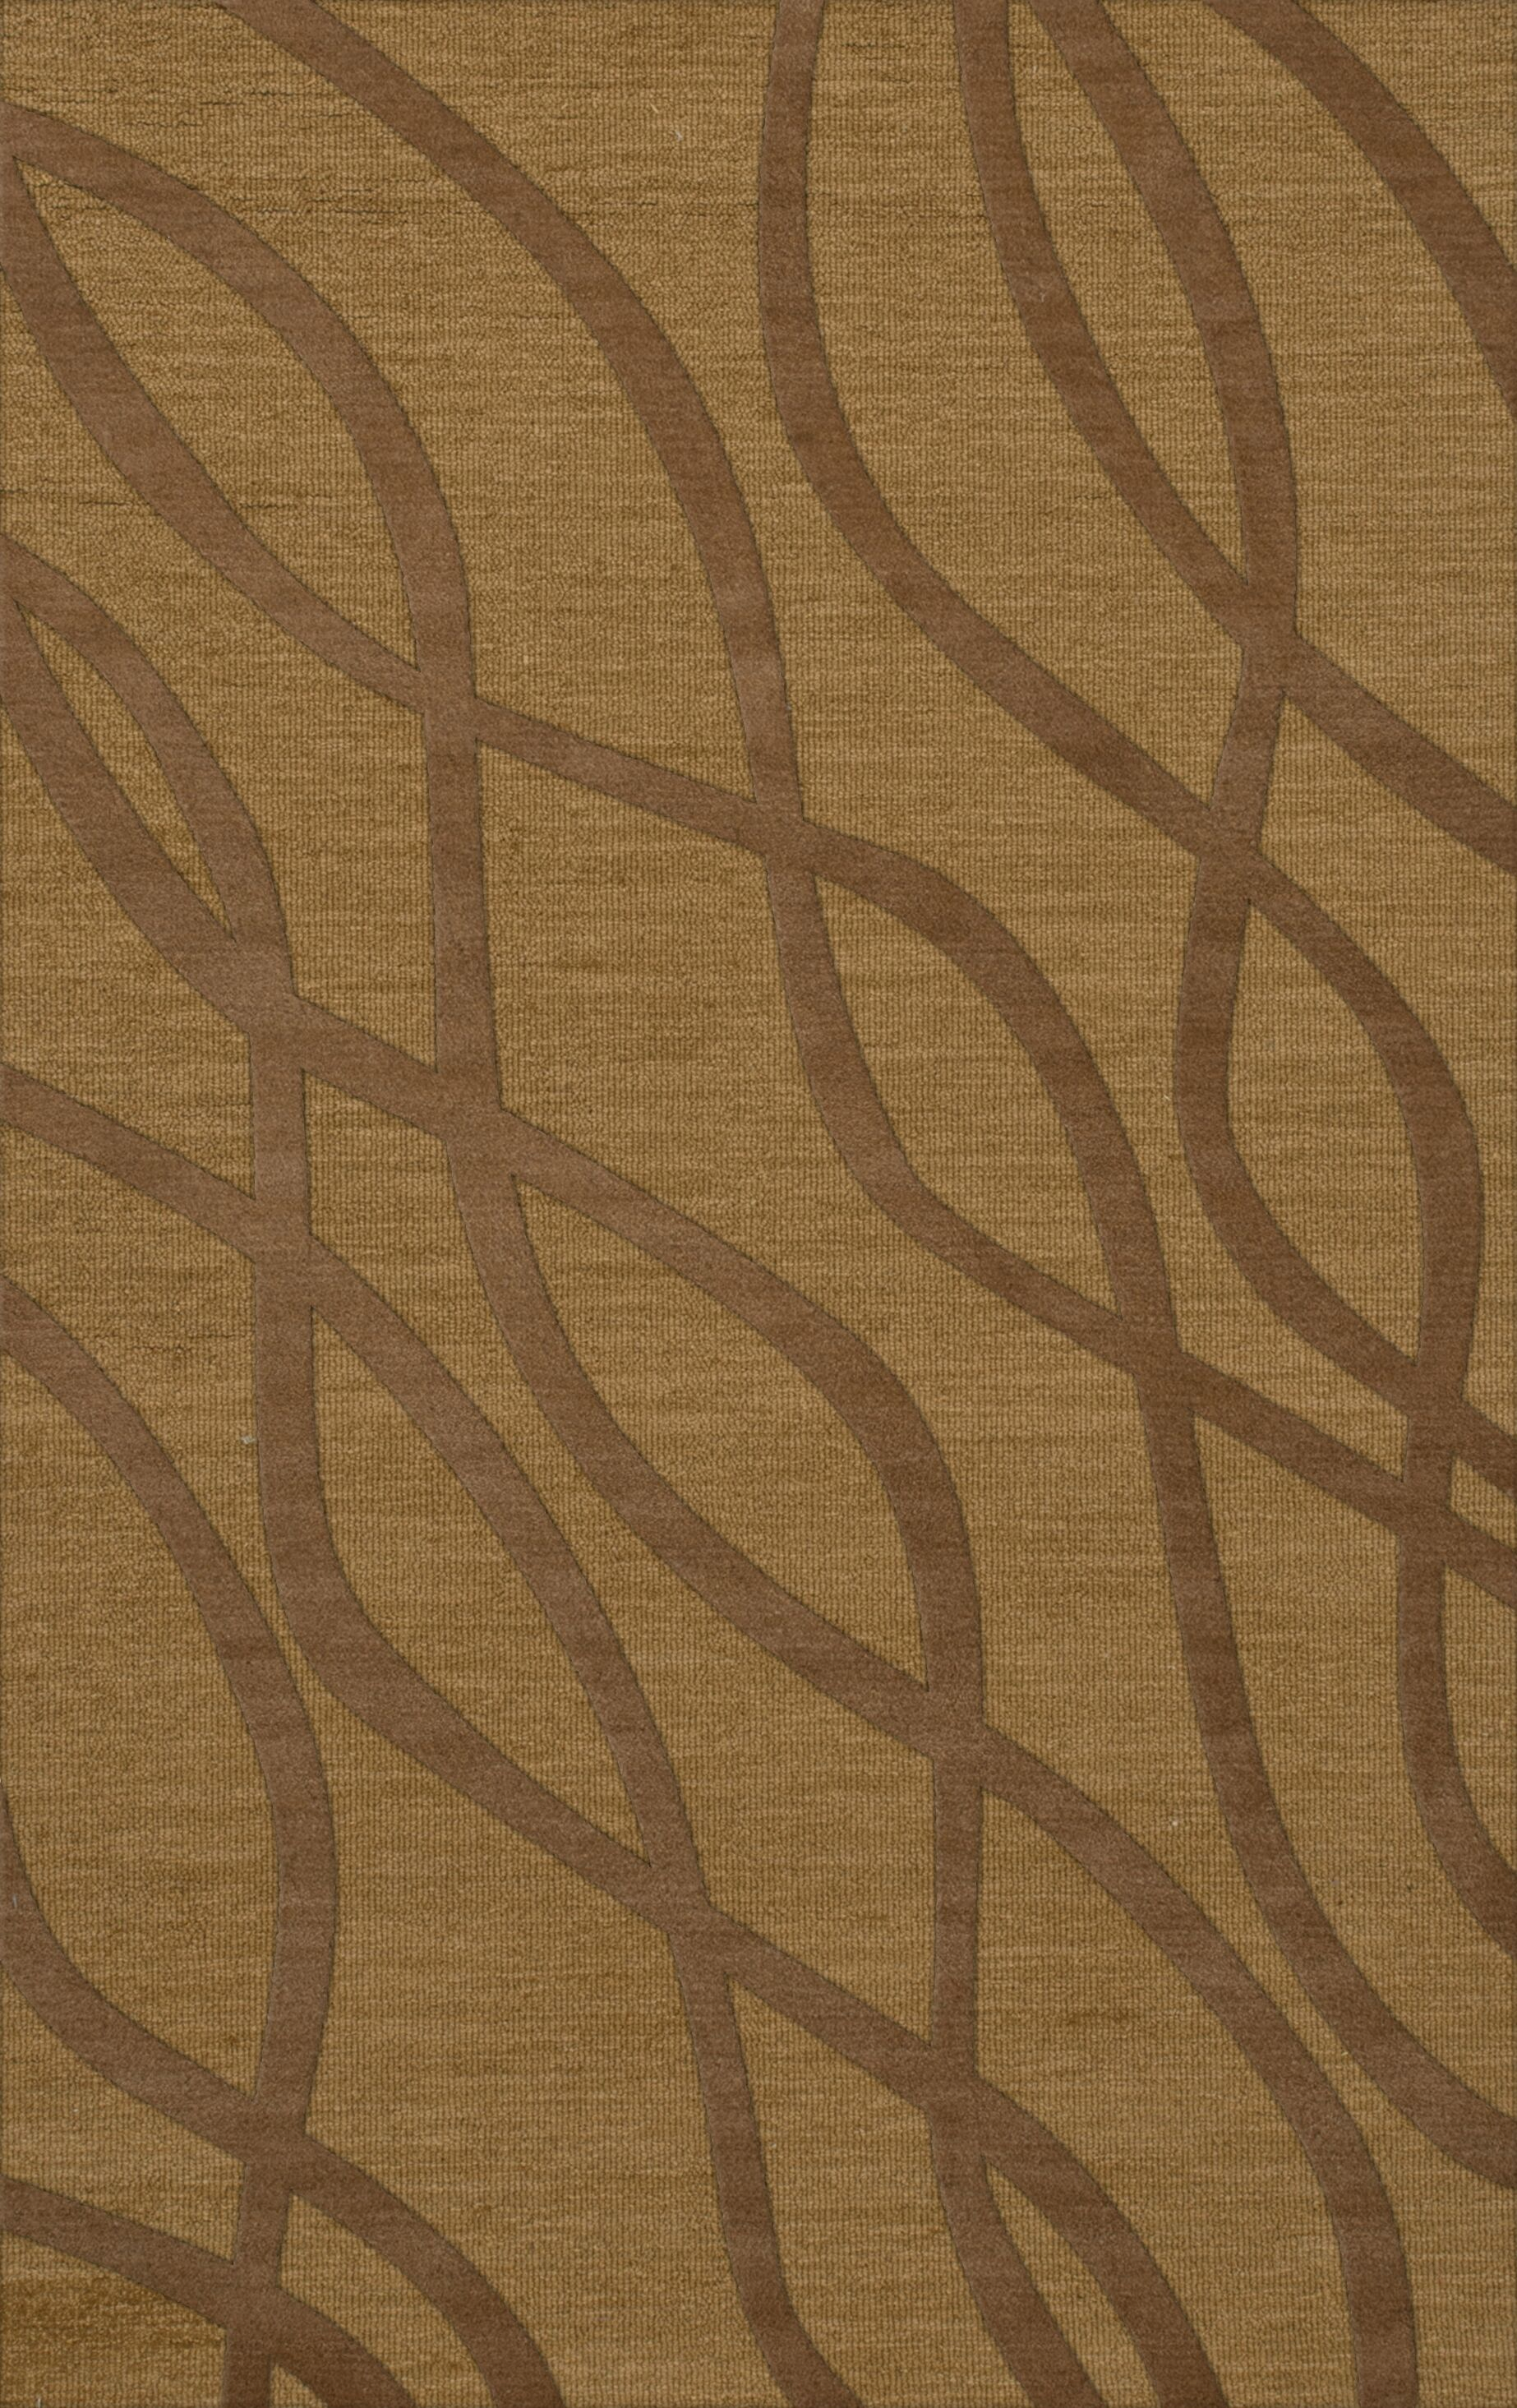 Dover Gold Dust Area Rug Rug Size: Rectangle 6' x 9'